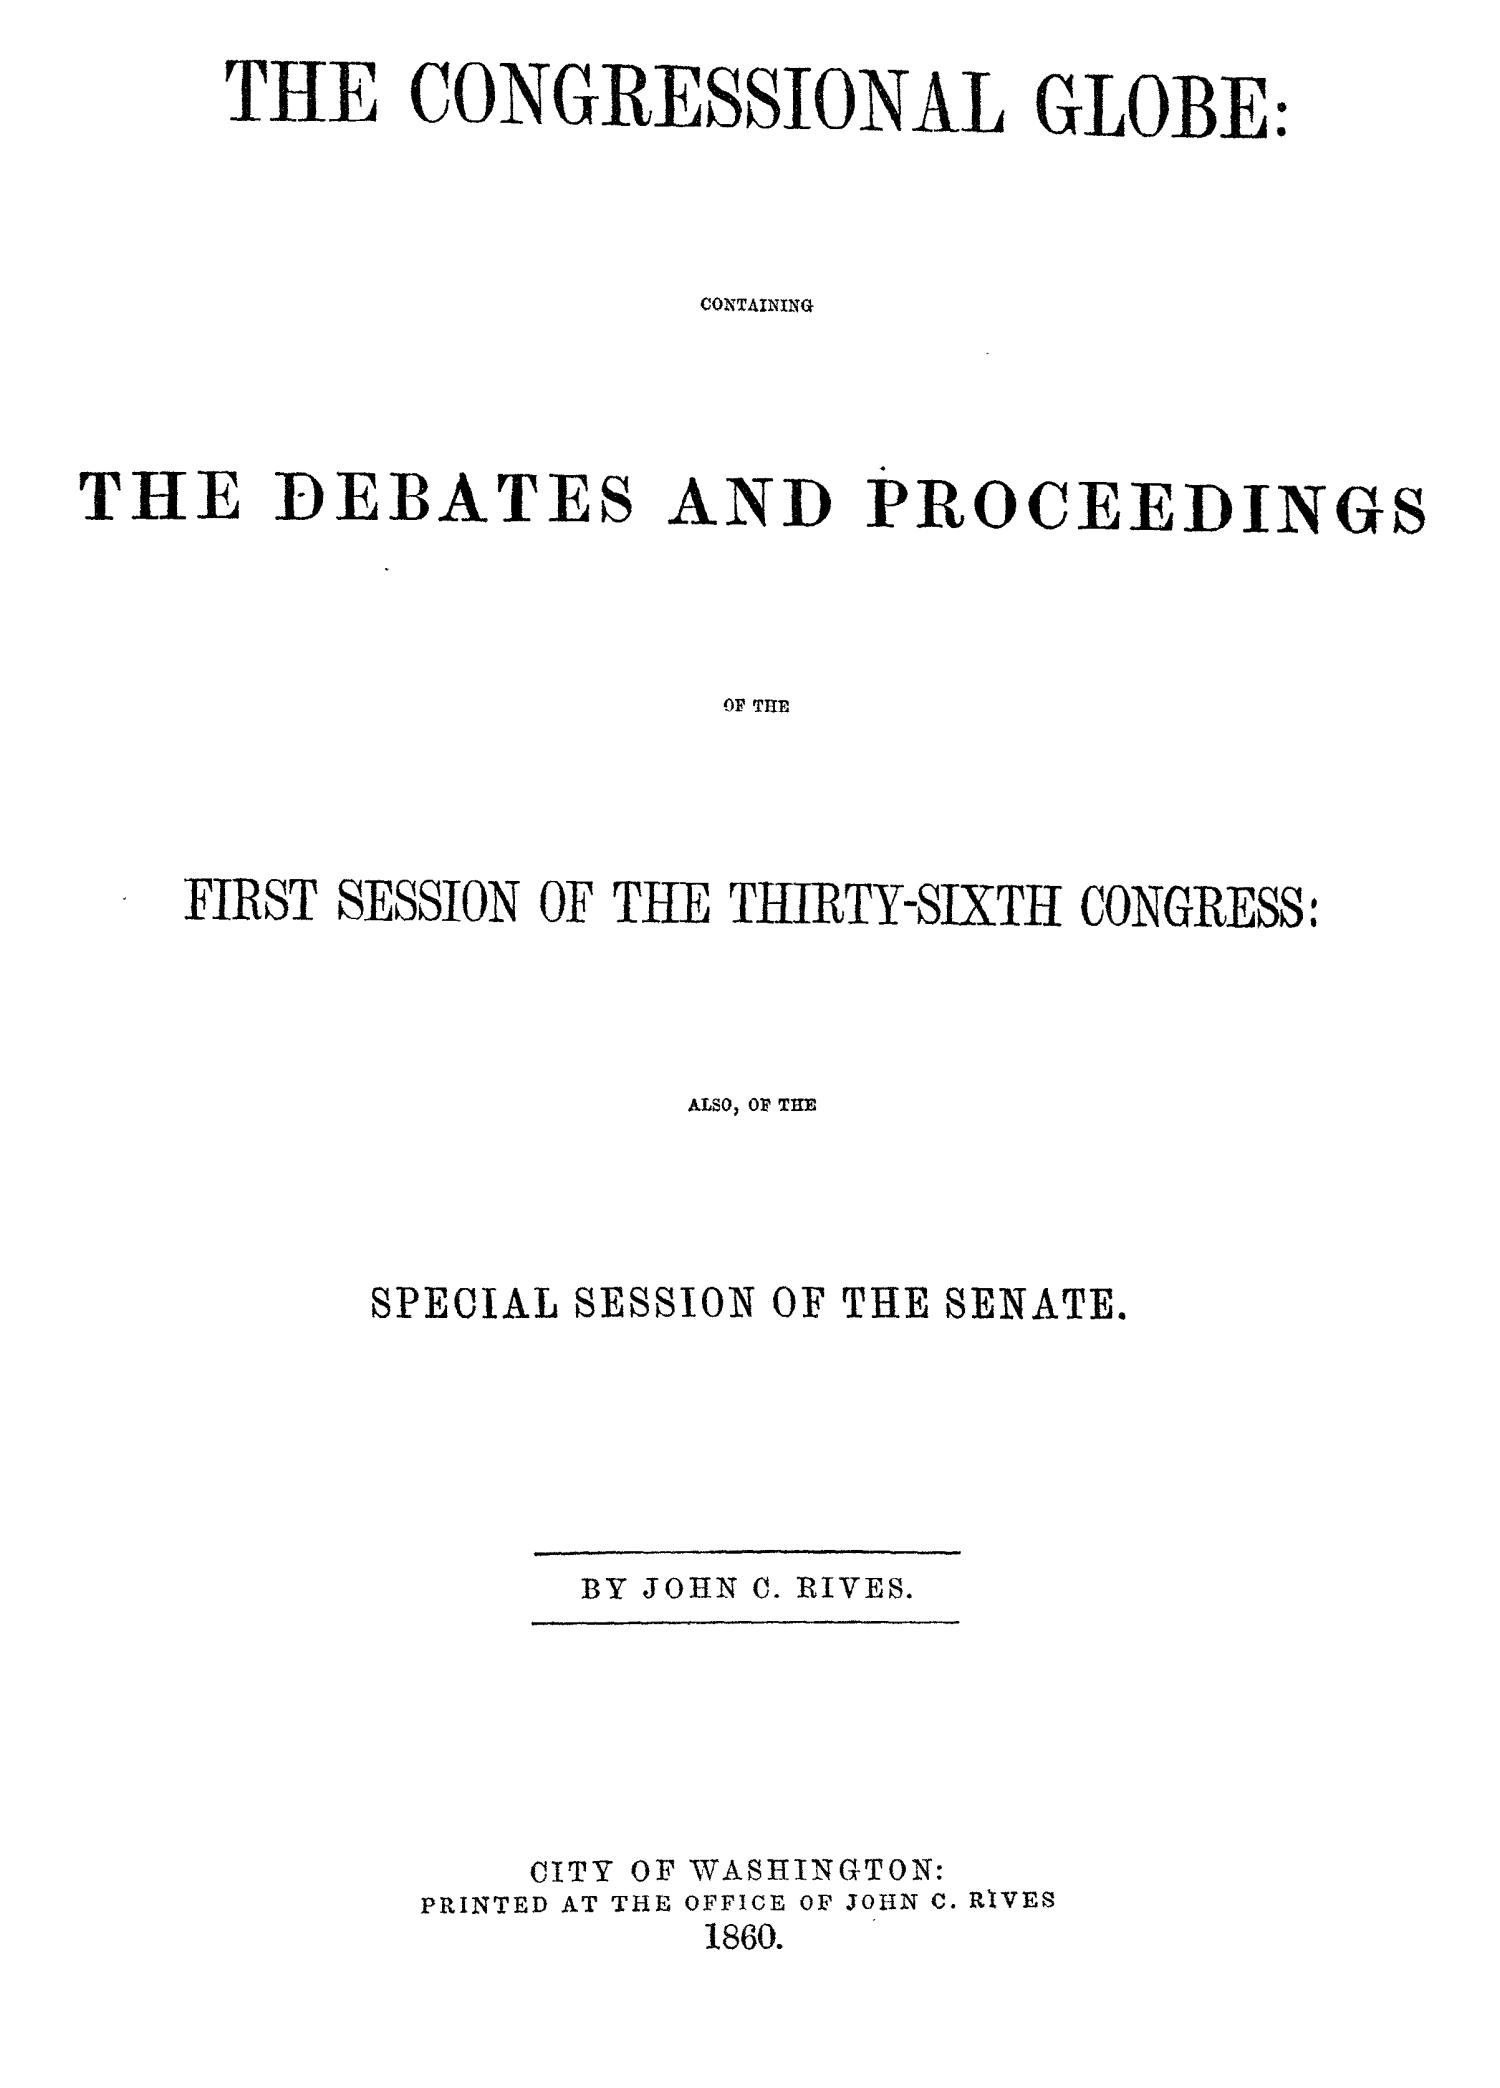 The Congressional Globe: Containing the Debates and Proceedings of the First Session of the Thirty-Sixth Congress: Also of the Special Session of the Senate                                                                                                      None